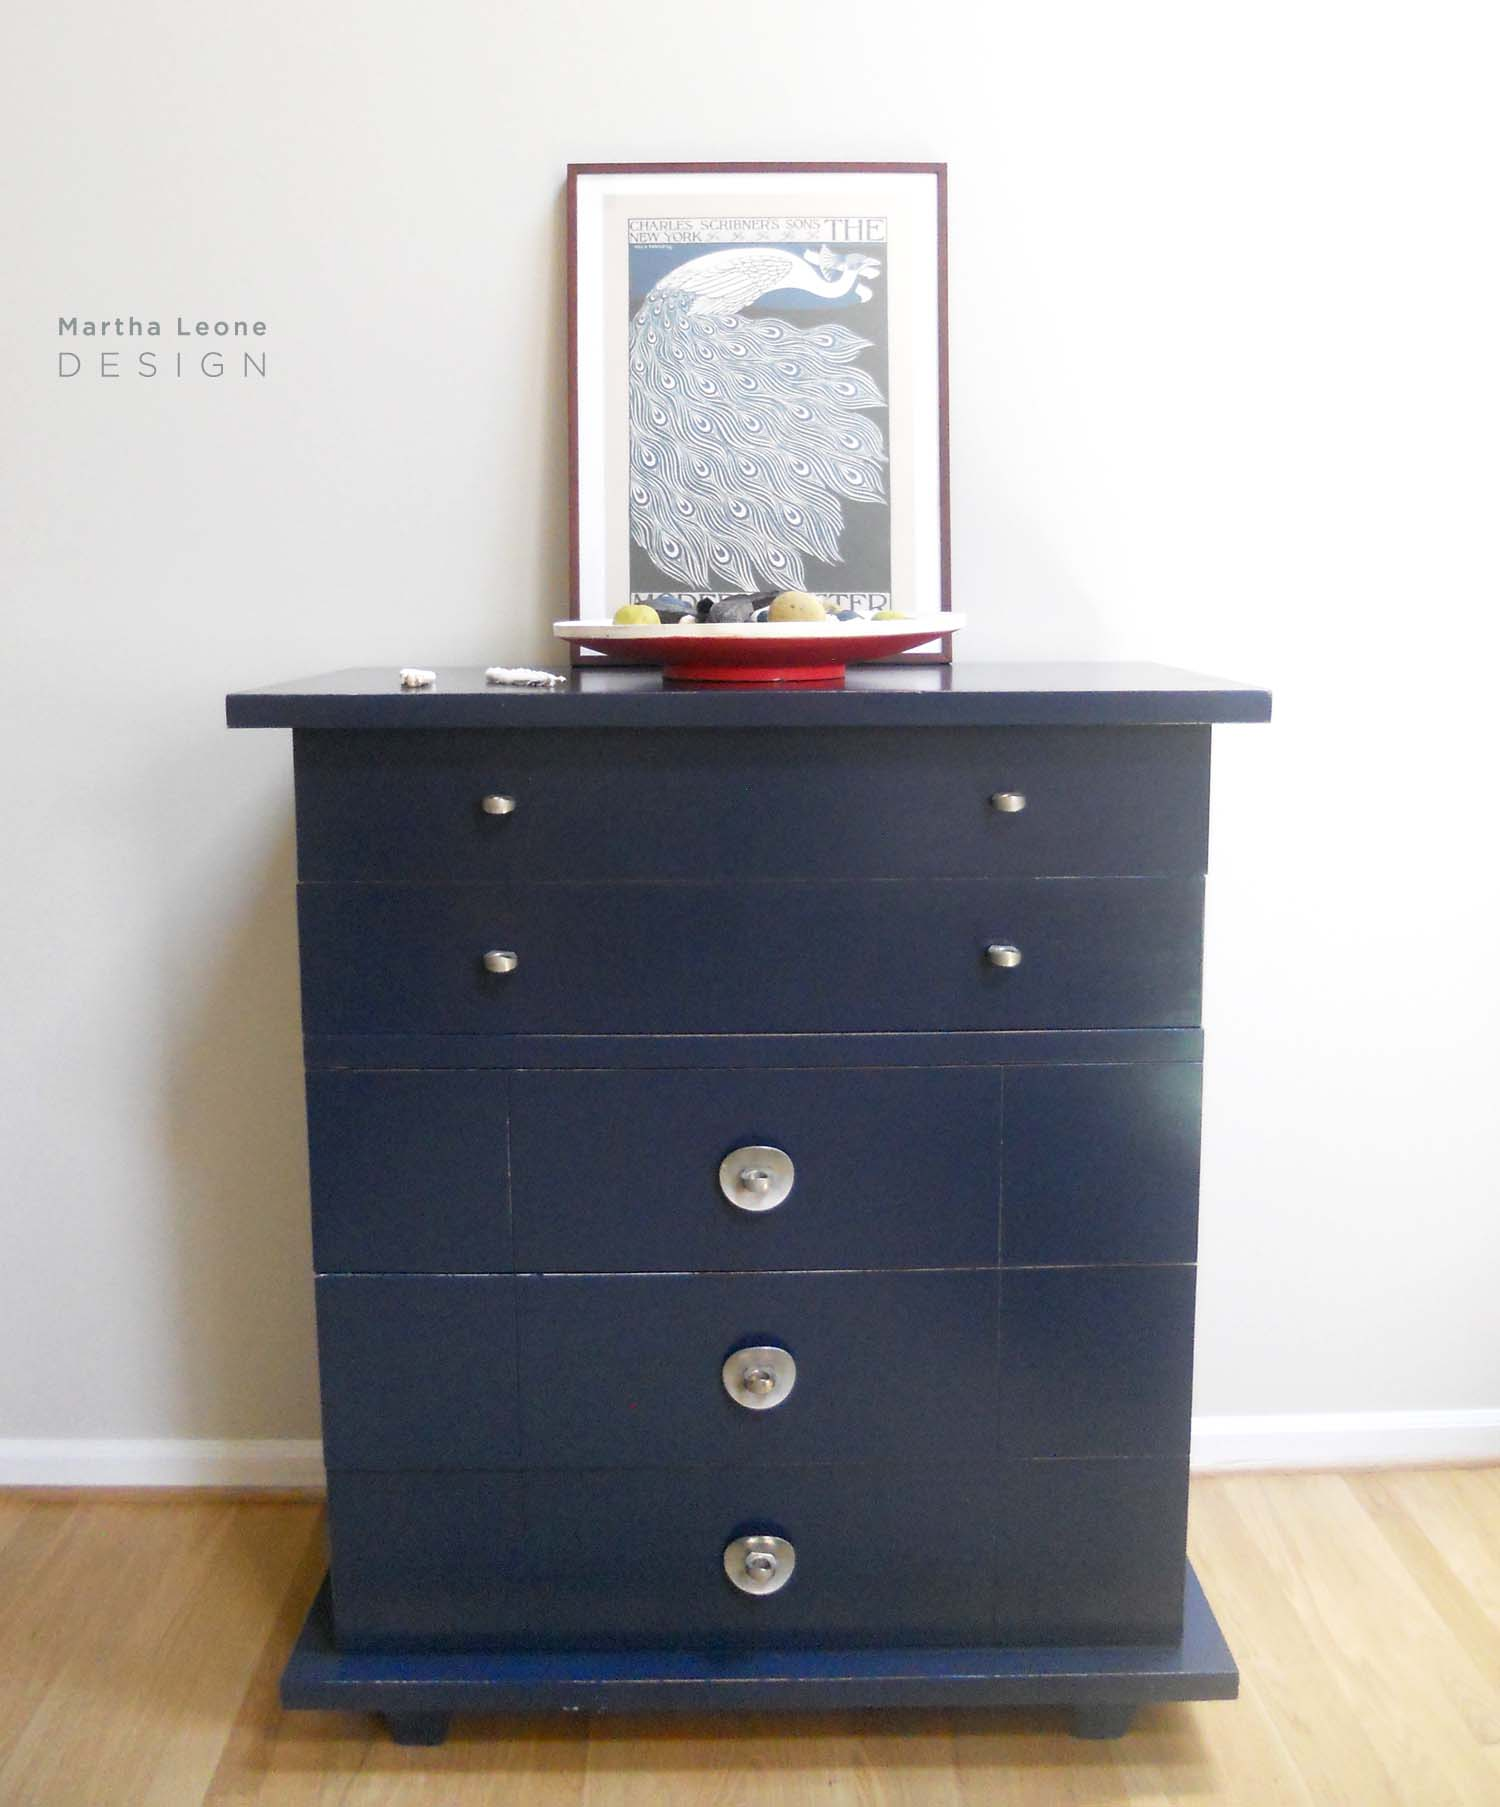 Michael Dresser2 by Martha Leone Design